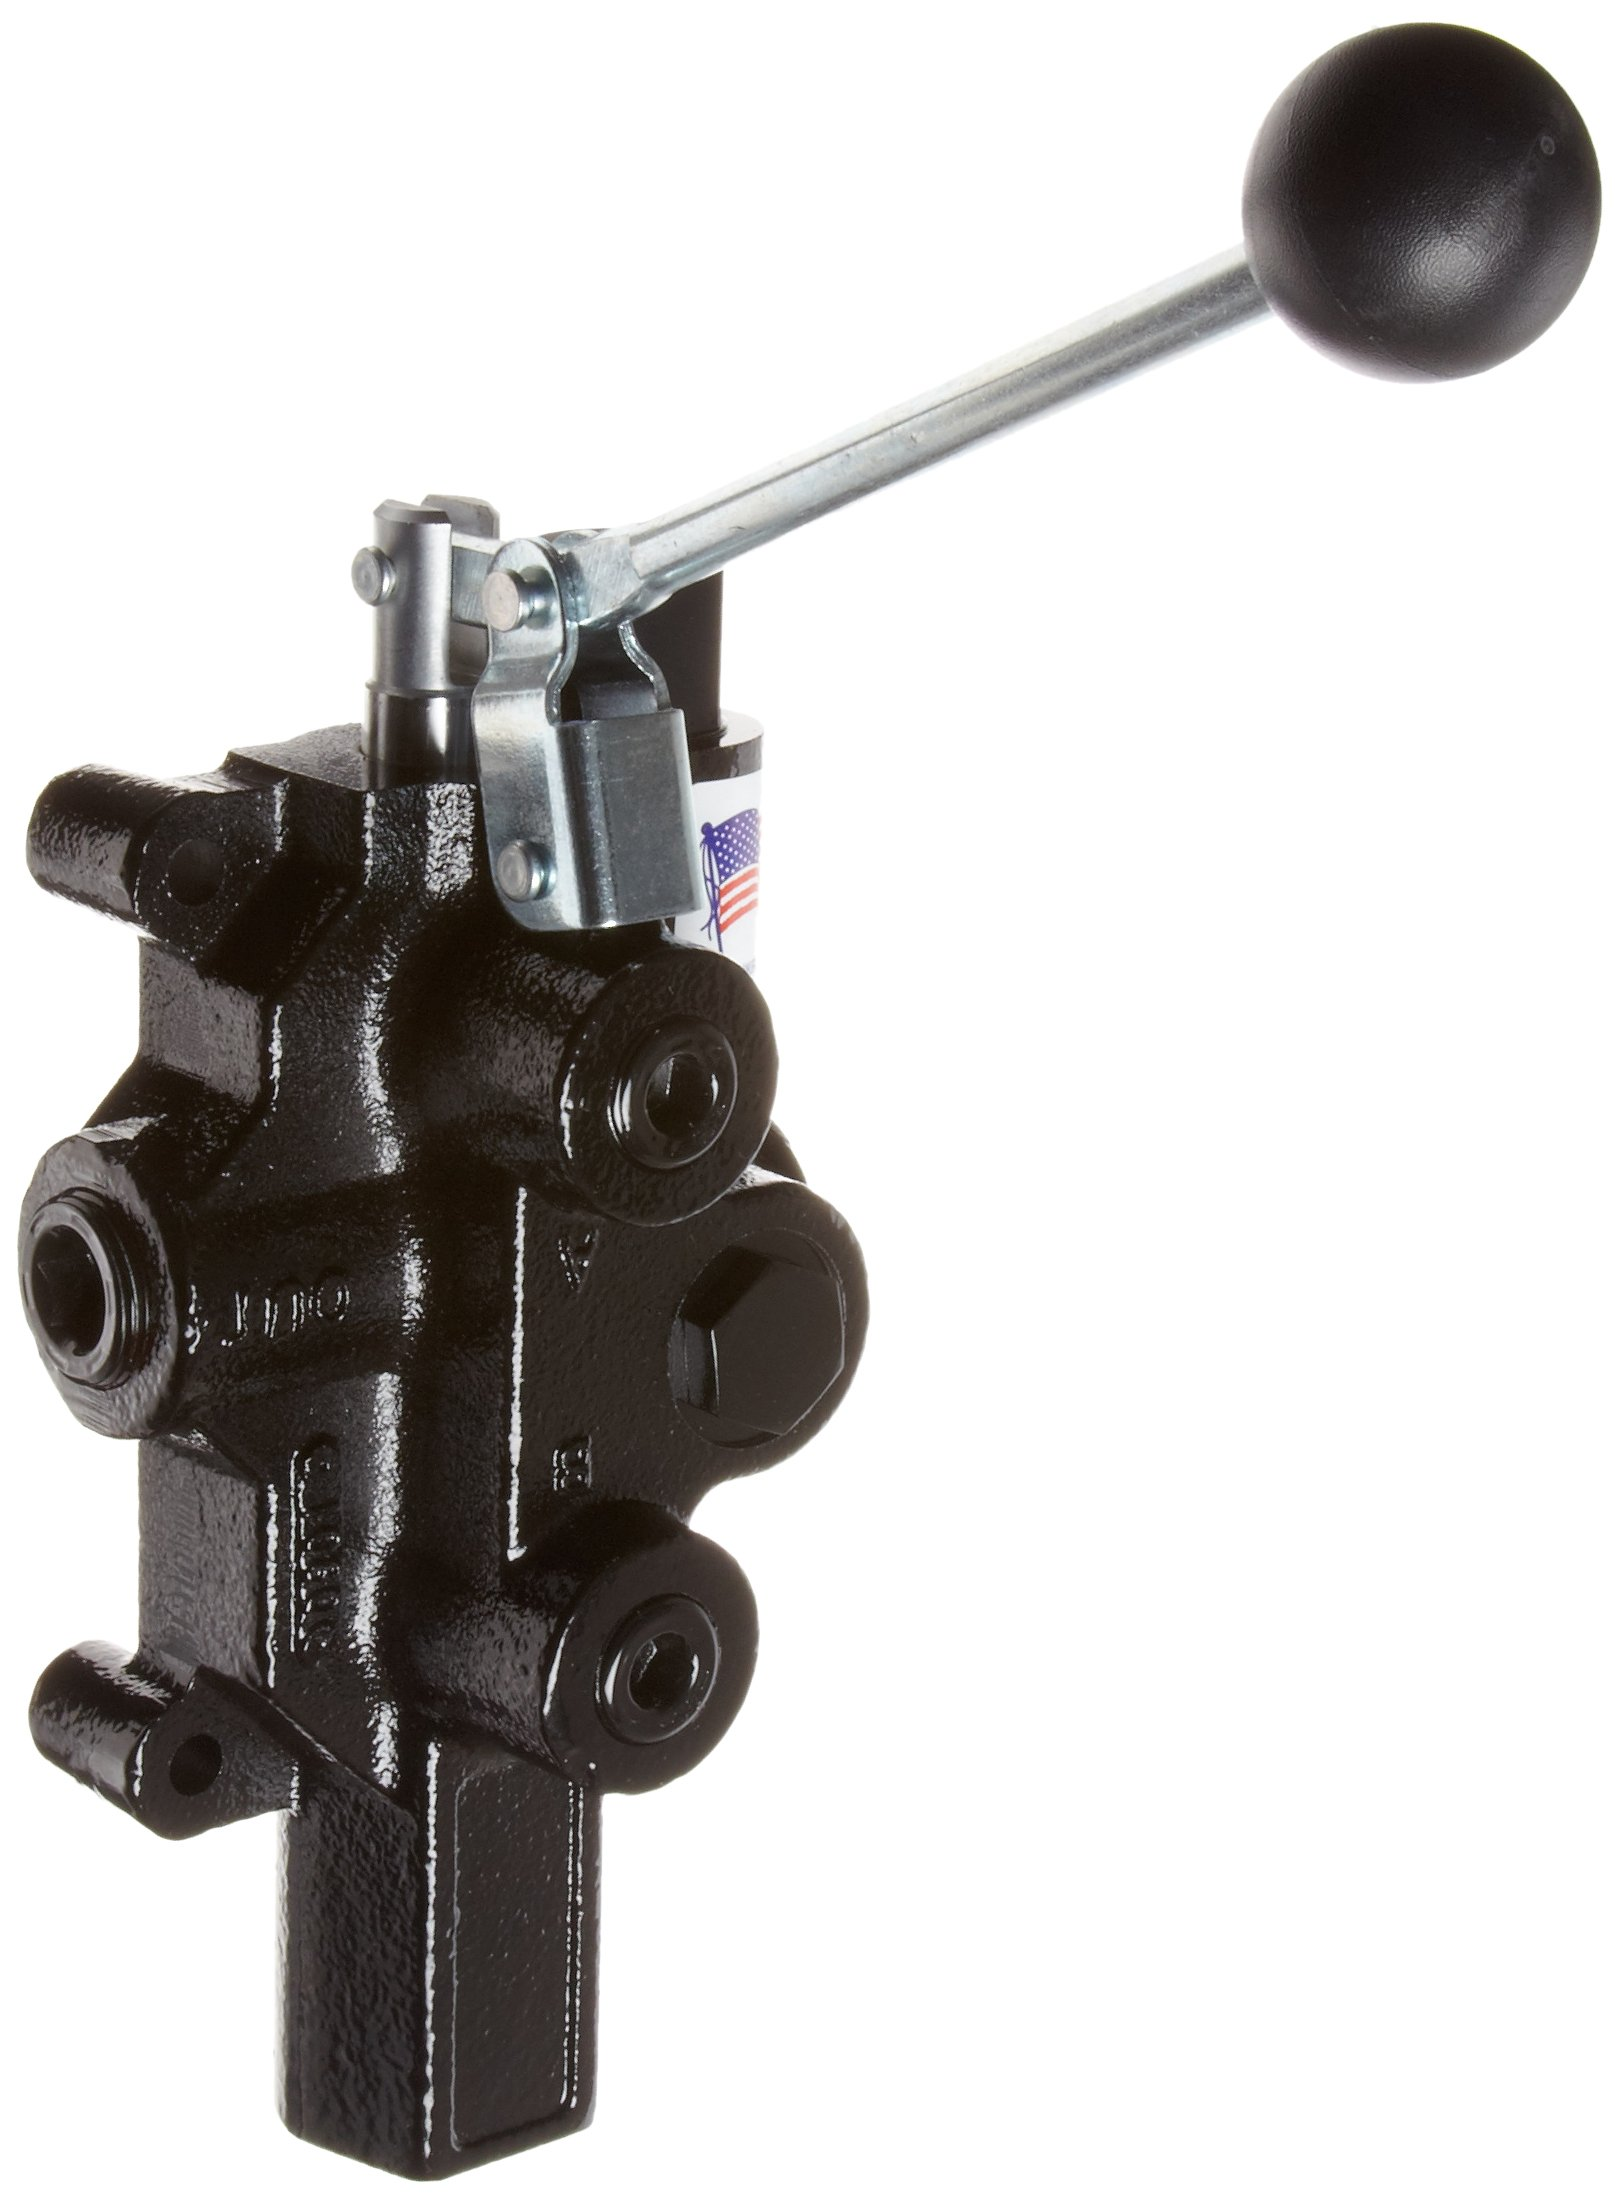 Prince RD-2575-M4-ESA1 Directional Control Valve, Logsplitter, Monoblock, Cast Iron, 1 Spool, 4 Ways, 3 Positions, Motor, Spring Center, Lever Handle, 3000 psi, 20 gpm, In/Out: 3/4'' NPT Female, Work 1/2'' NPT Female